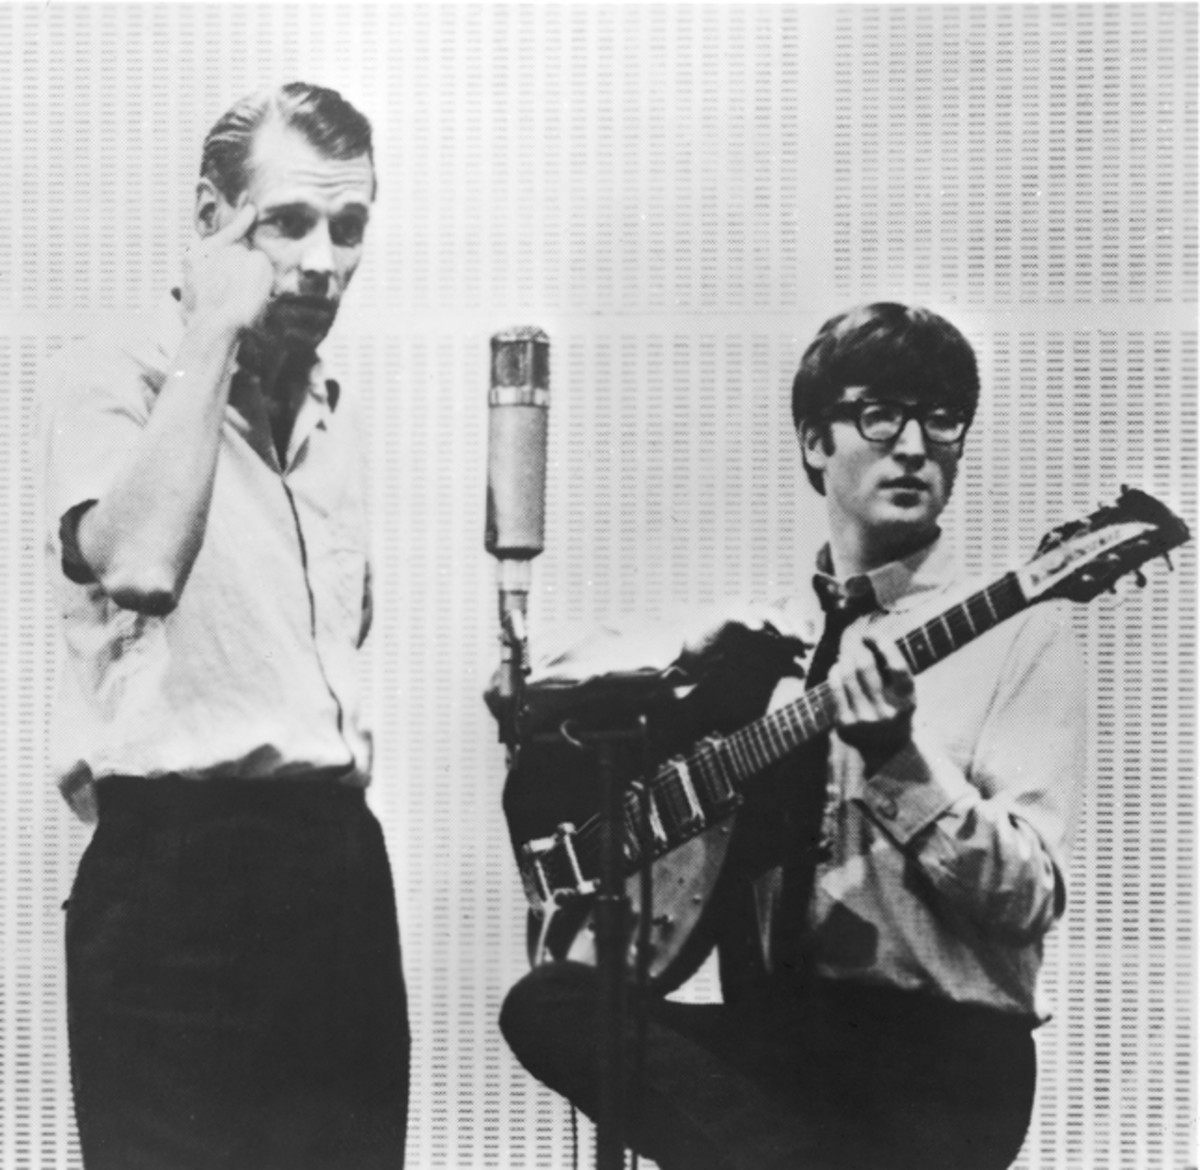 George Martin John Lennon Beatles studio